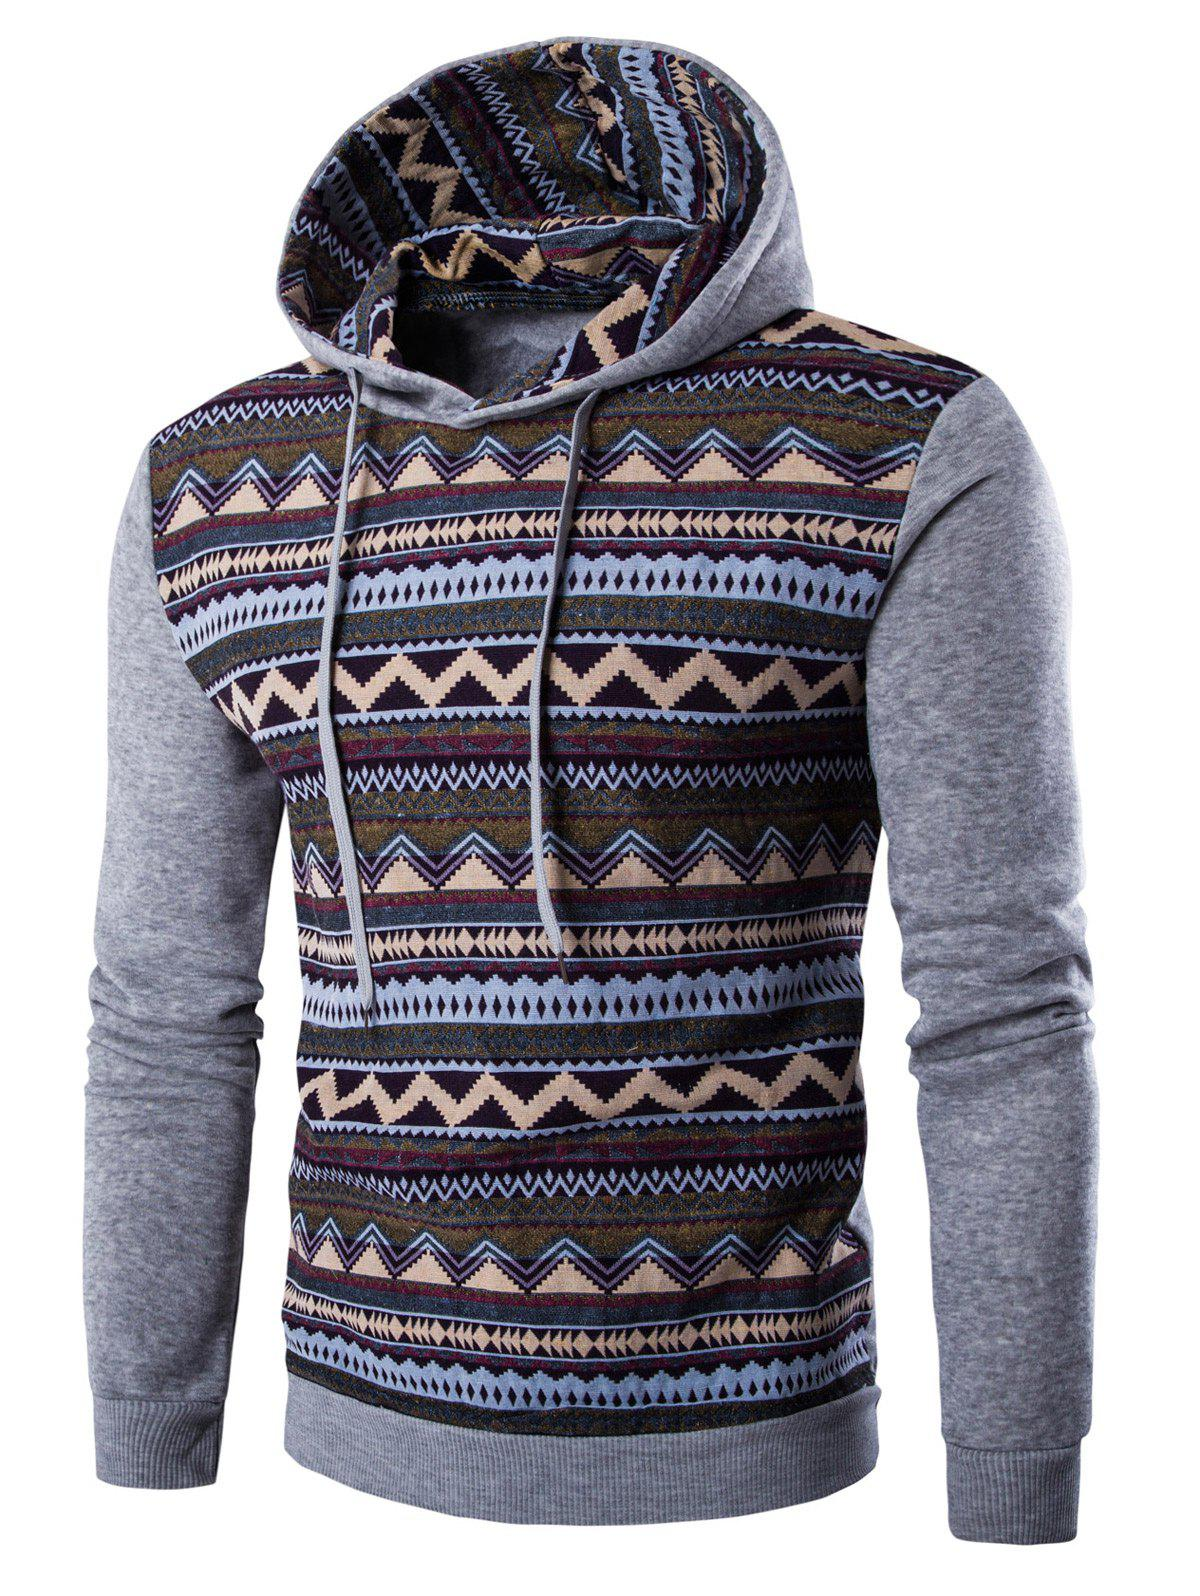 Tribal Print Hooded Long Sleeve Fleece HoodieMEN<br><br>Size: M; Color: LIGHT GRAY; Material: Cotton,Polyester; Shirt Length: Regular; Sleeve Length: Full; Style: Fashion; Weight: 0.401kg; Package Contents: 1 x Hoodie;